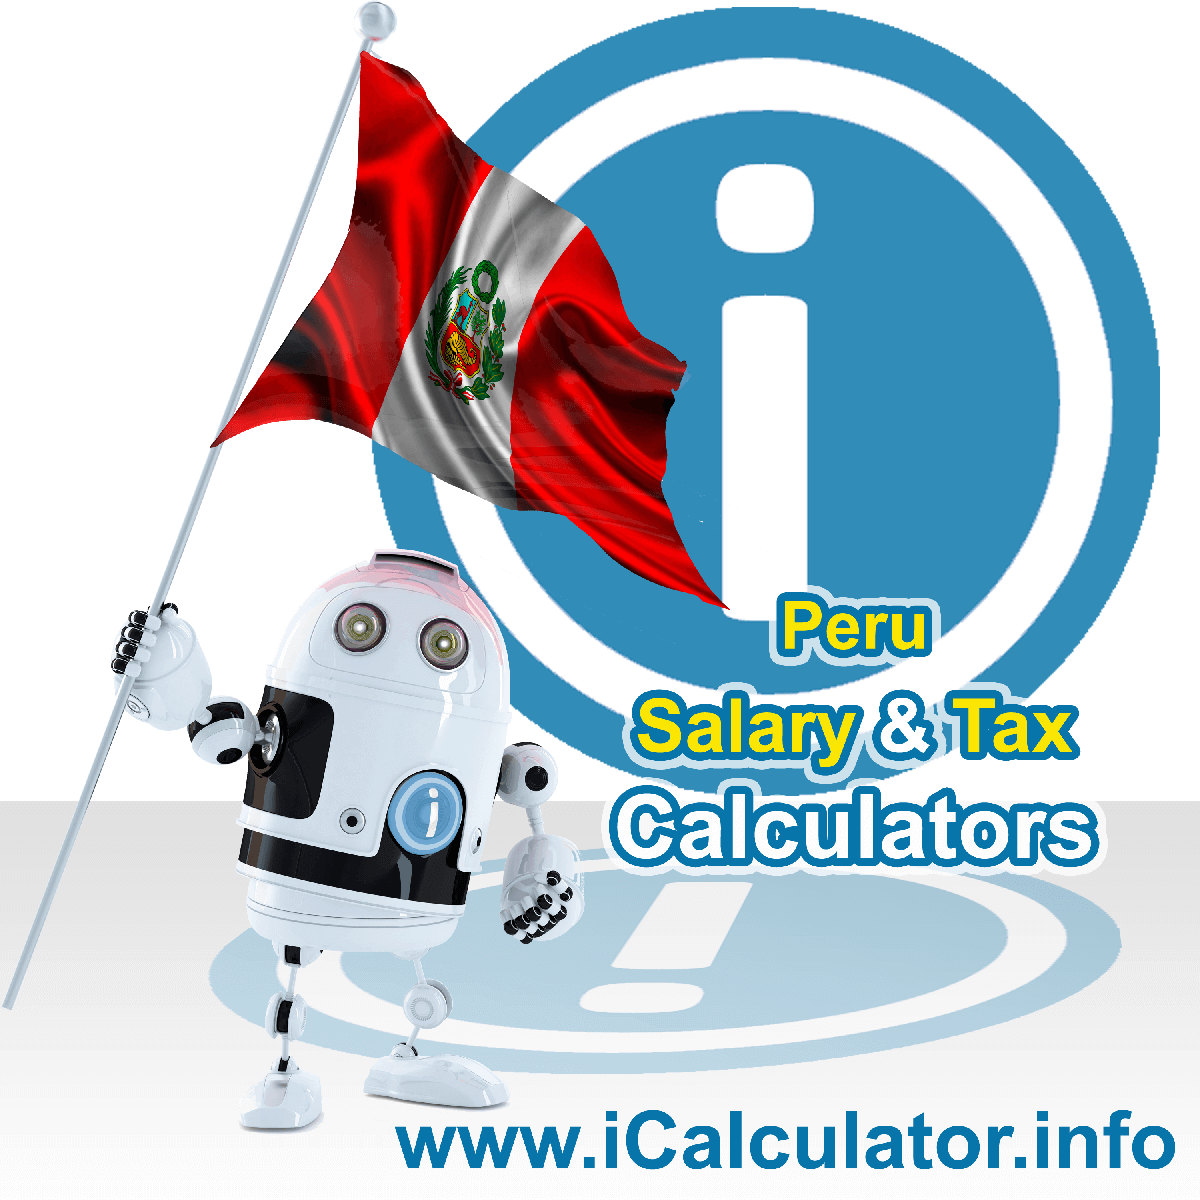 Peru Salary Calculator. This image shows the Peruese flag and information relating to the tax formula for the Peru Tax Calculator